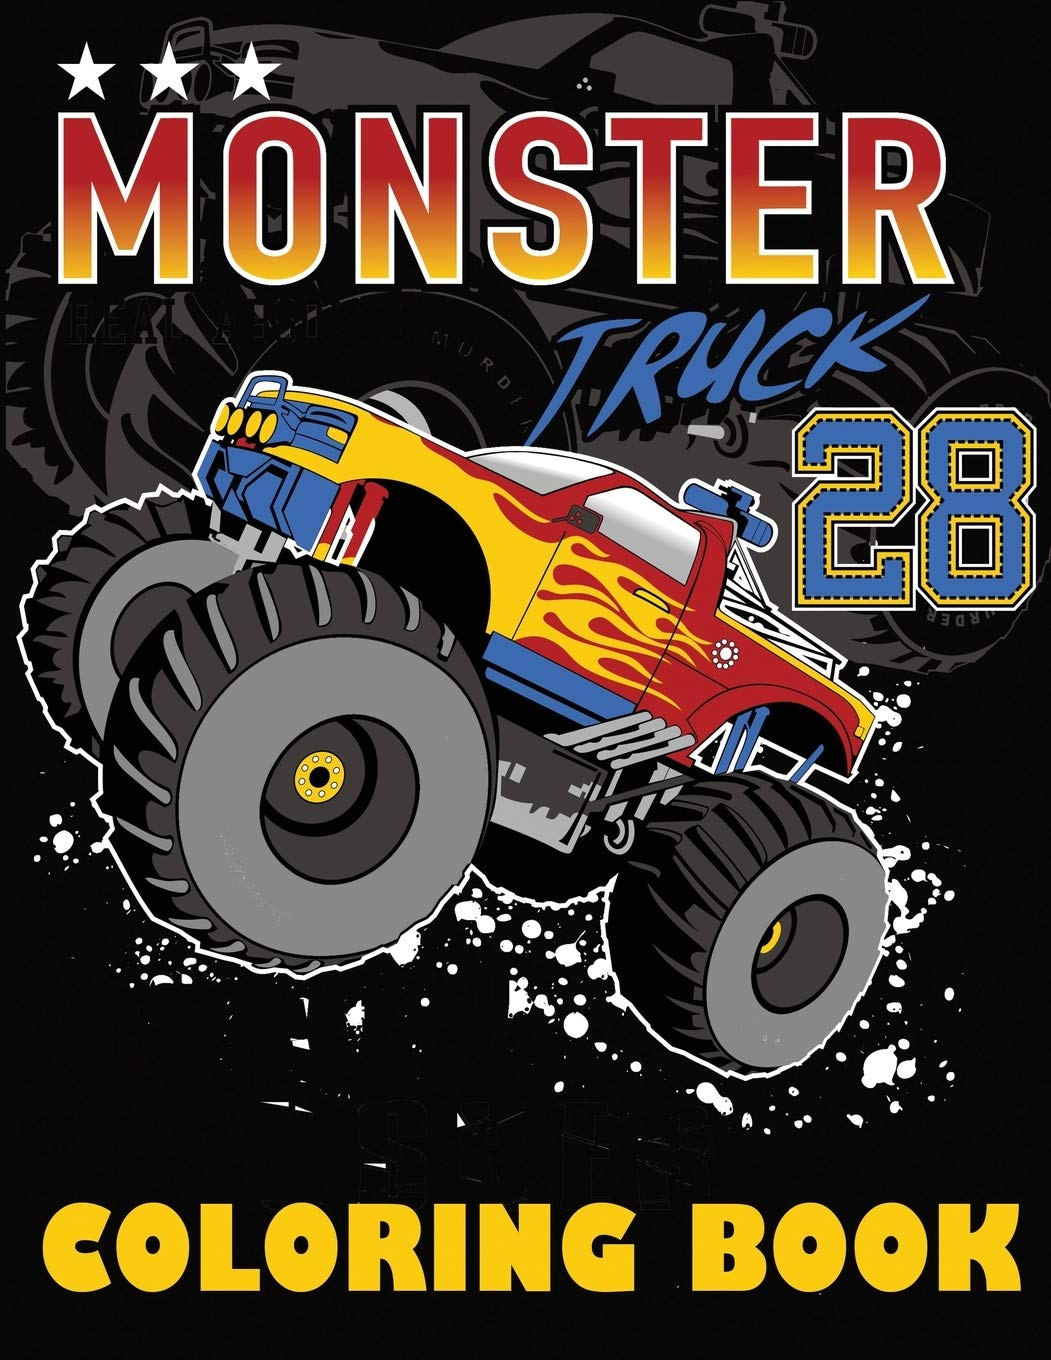 Monster Truck Coloring Book Big Coloring Book For Boys And Girls Blue Wave Press 9781647900311 Amazon Com Books